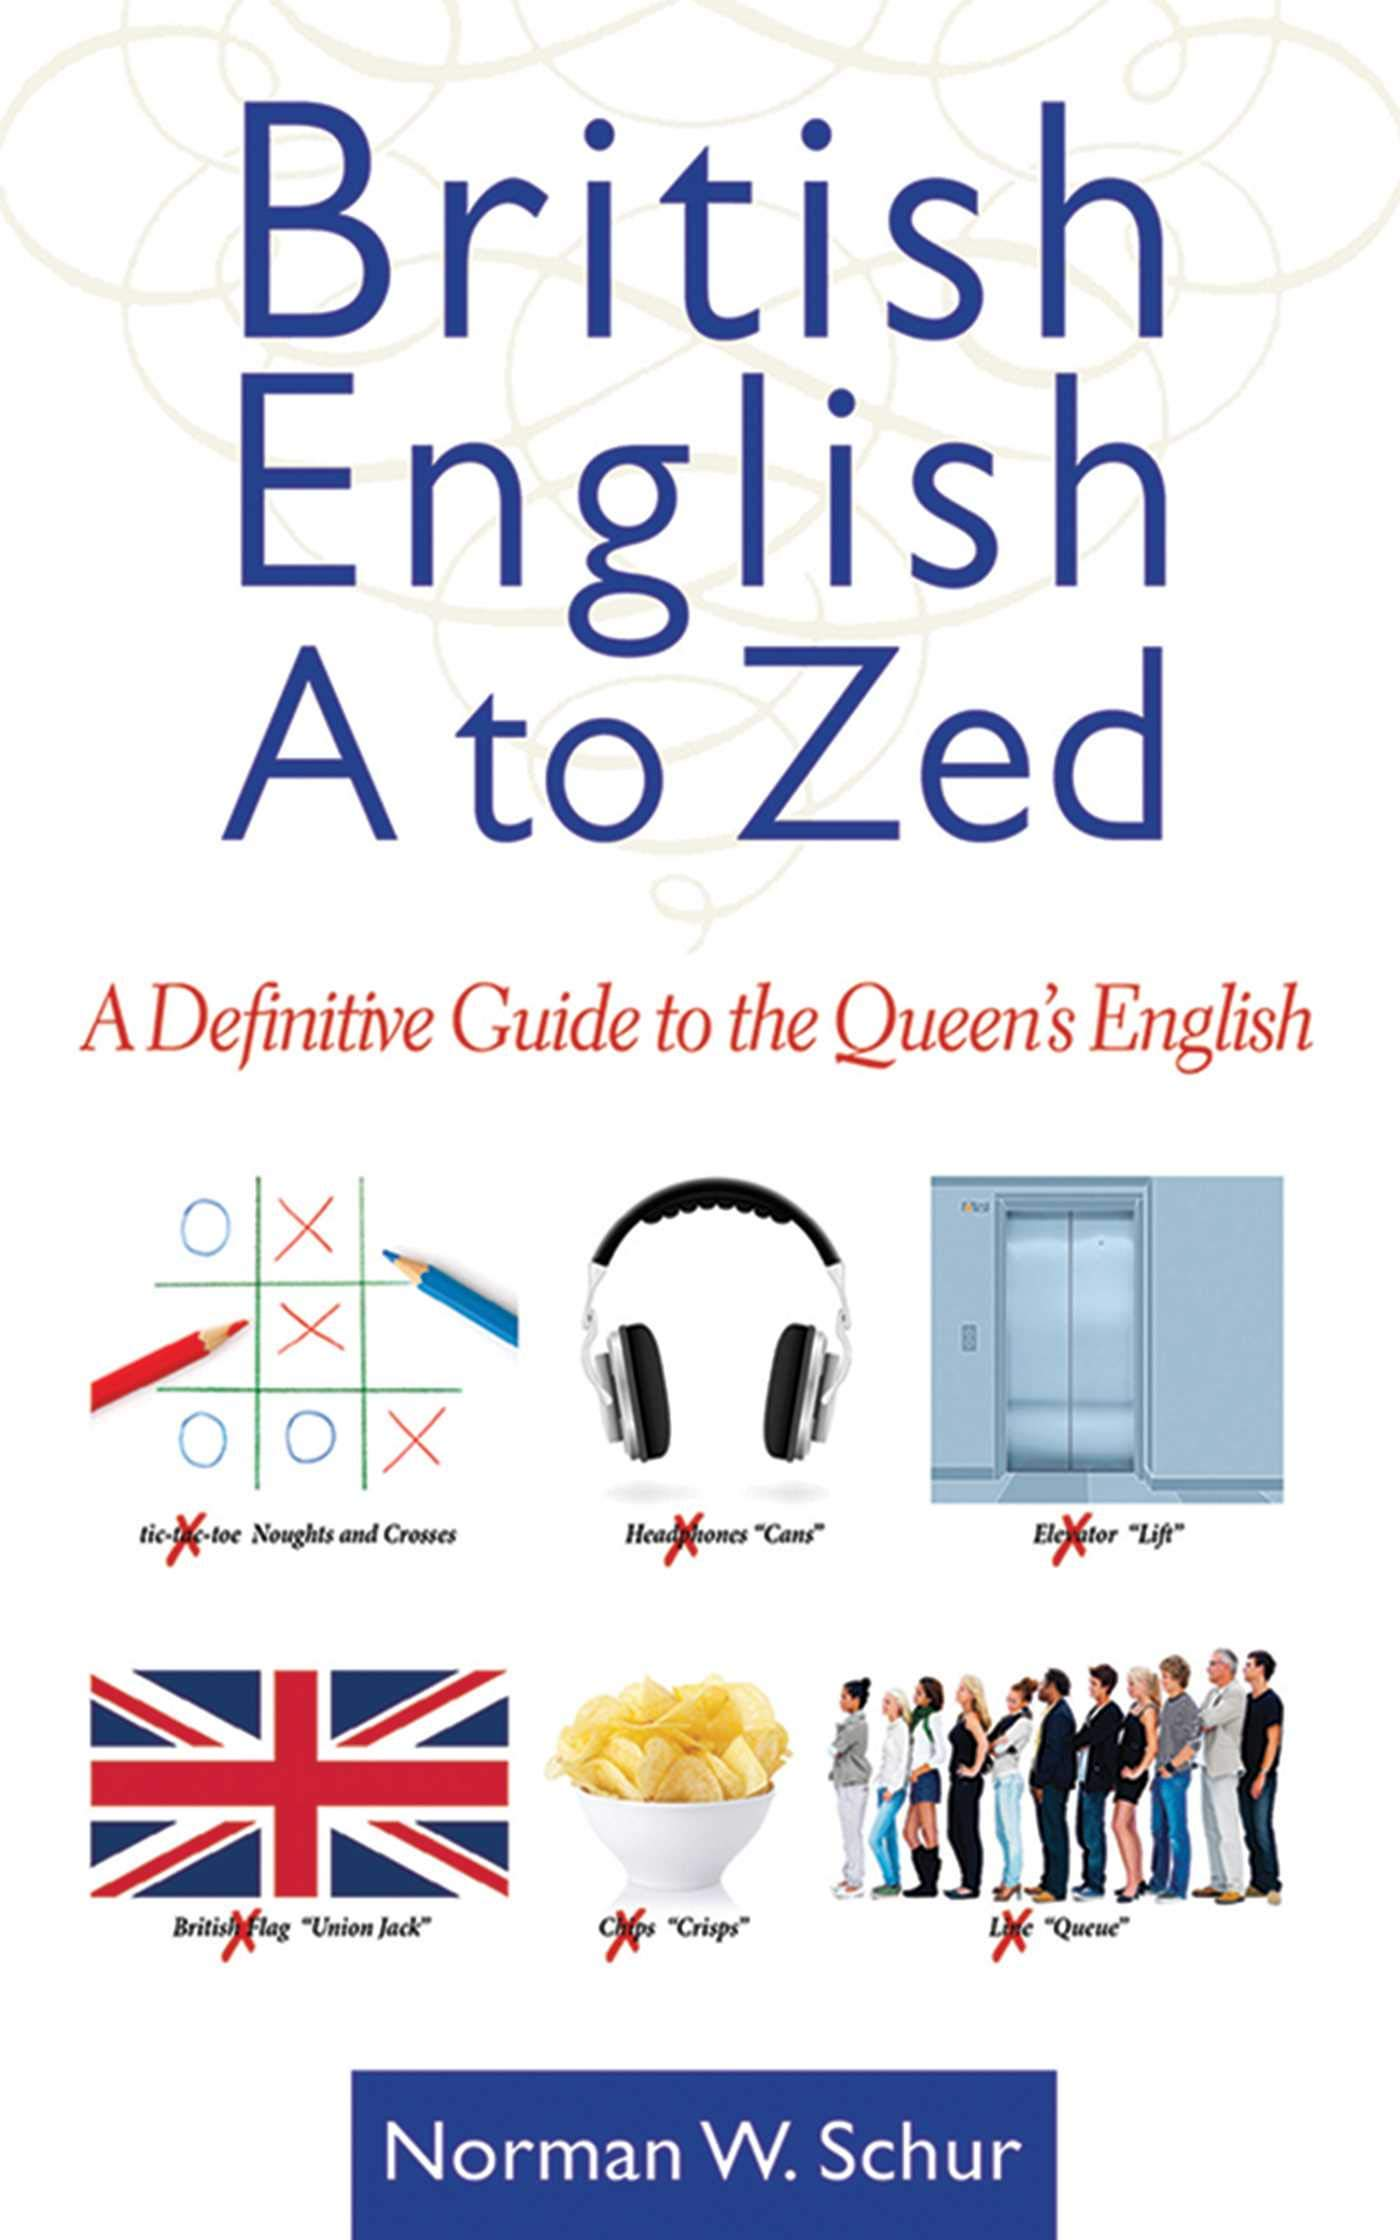 British English from A to Zed: A Definitive Guide to the Queen's English:  Amazon.co.uk: Norman W. Schur: 9781620875773: Books